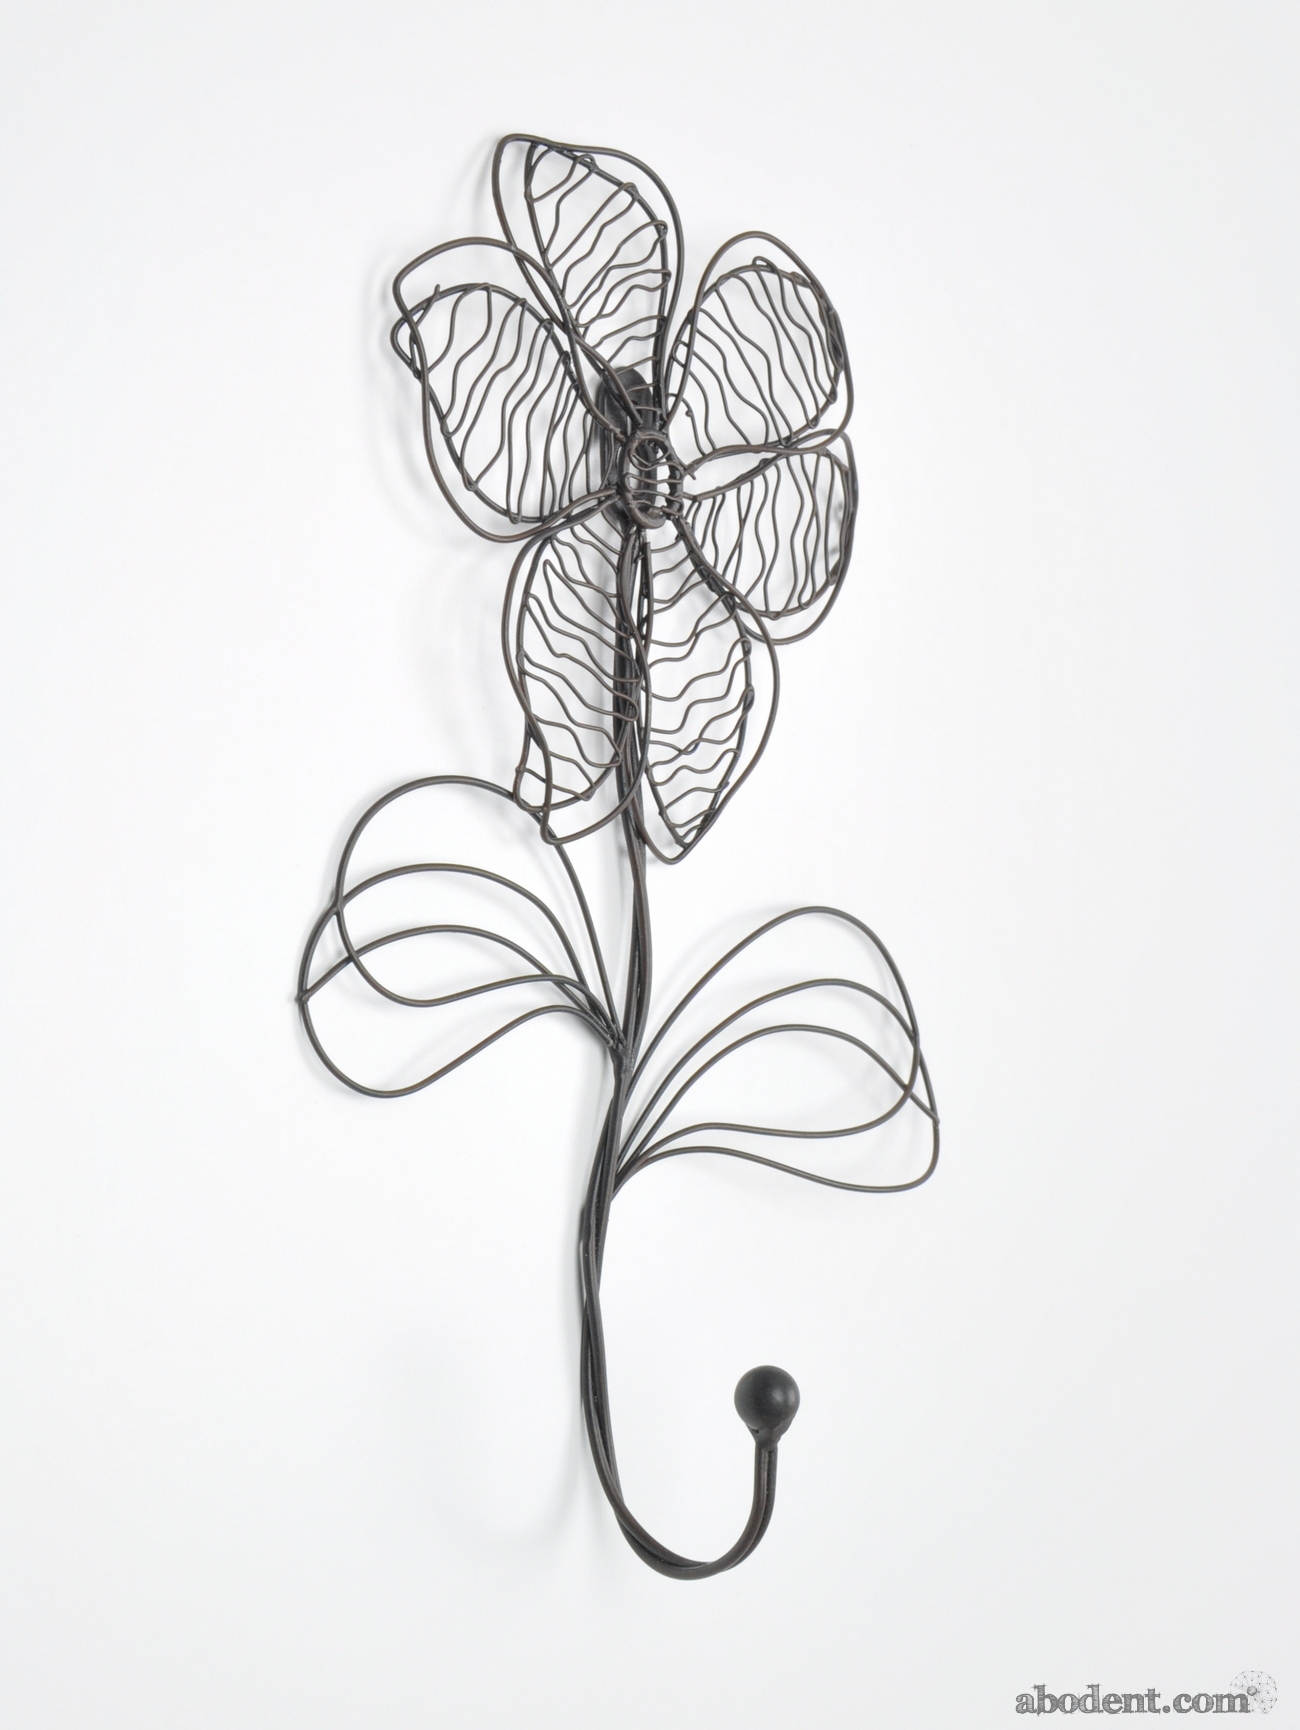 Black Wire Flower Shaped Coat Hook Hooks Wall Mounted Door